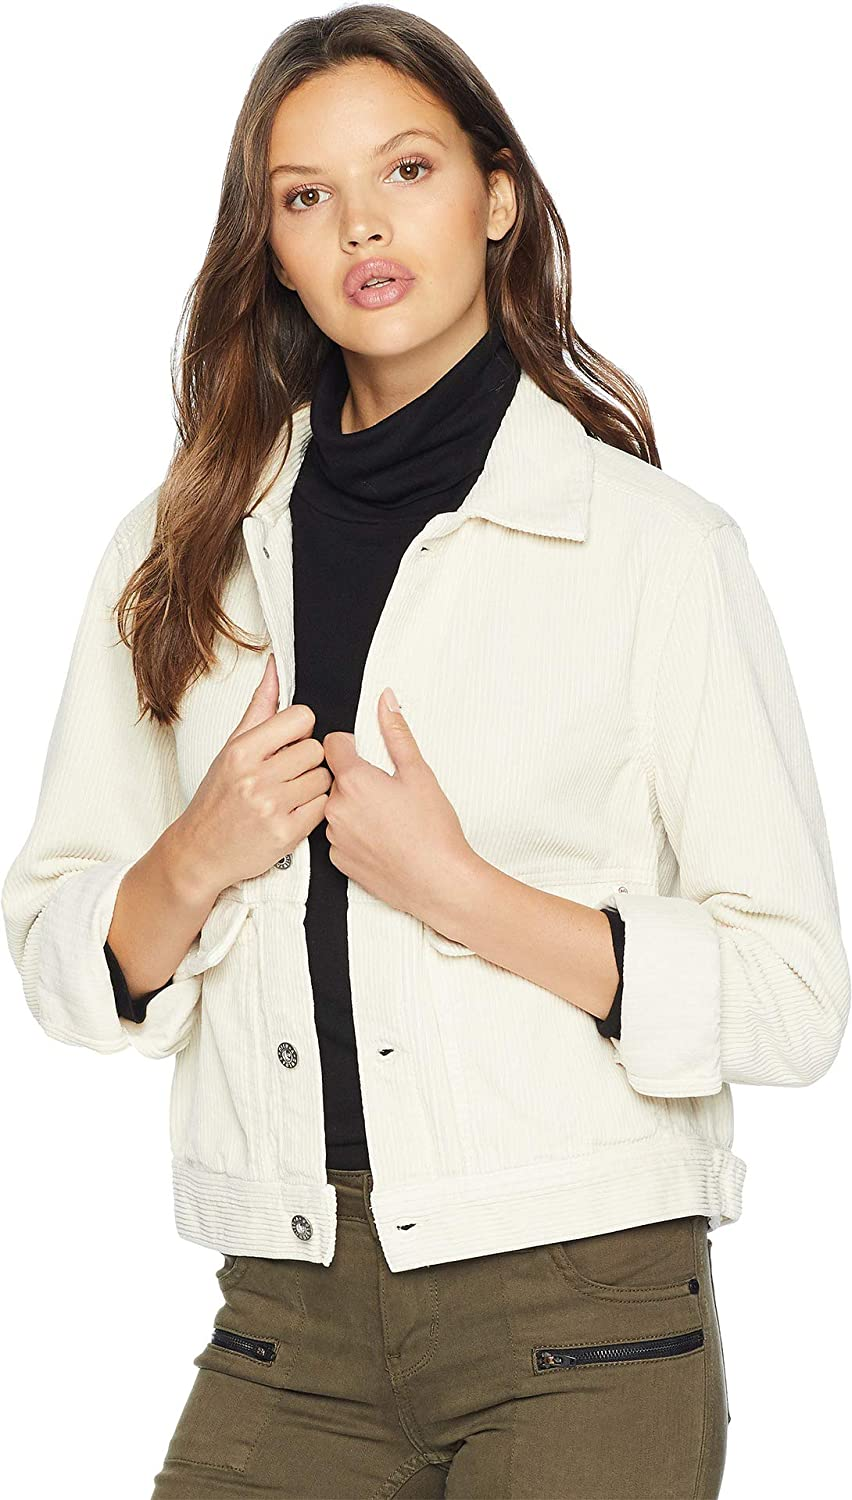 AG Adriano goldschmied Women's Evonne Jacket Ivory Dust Medium